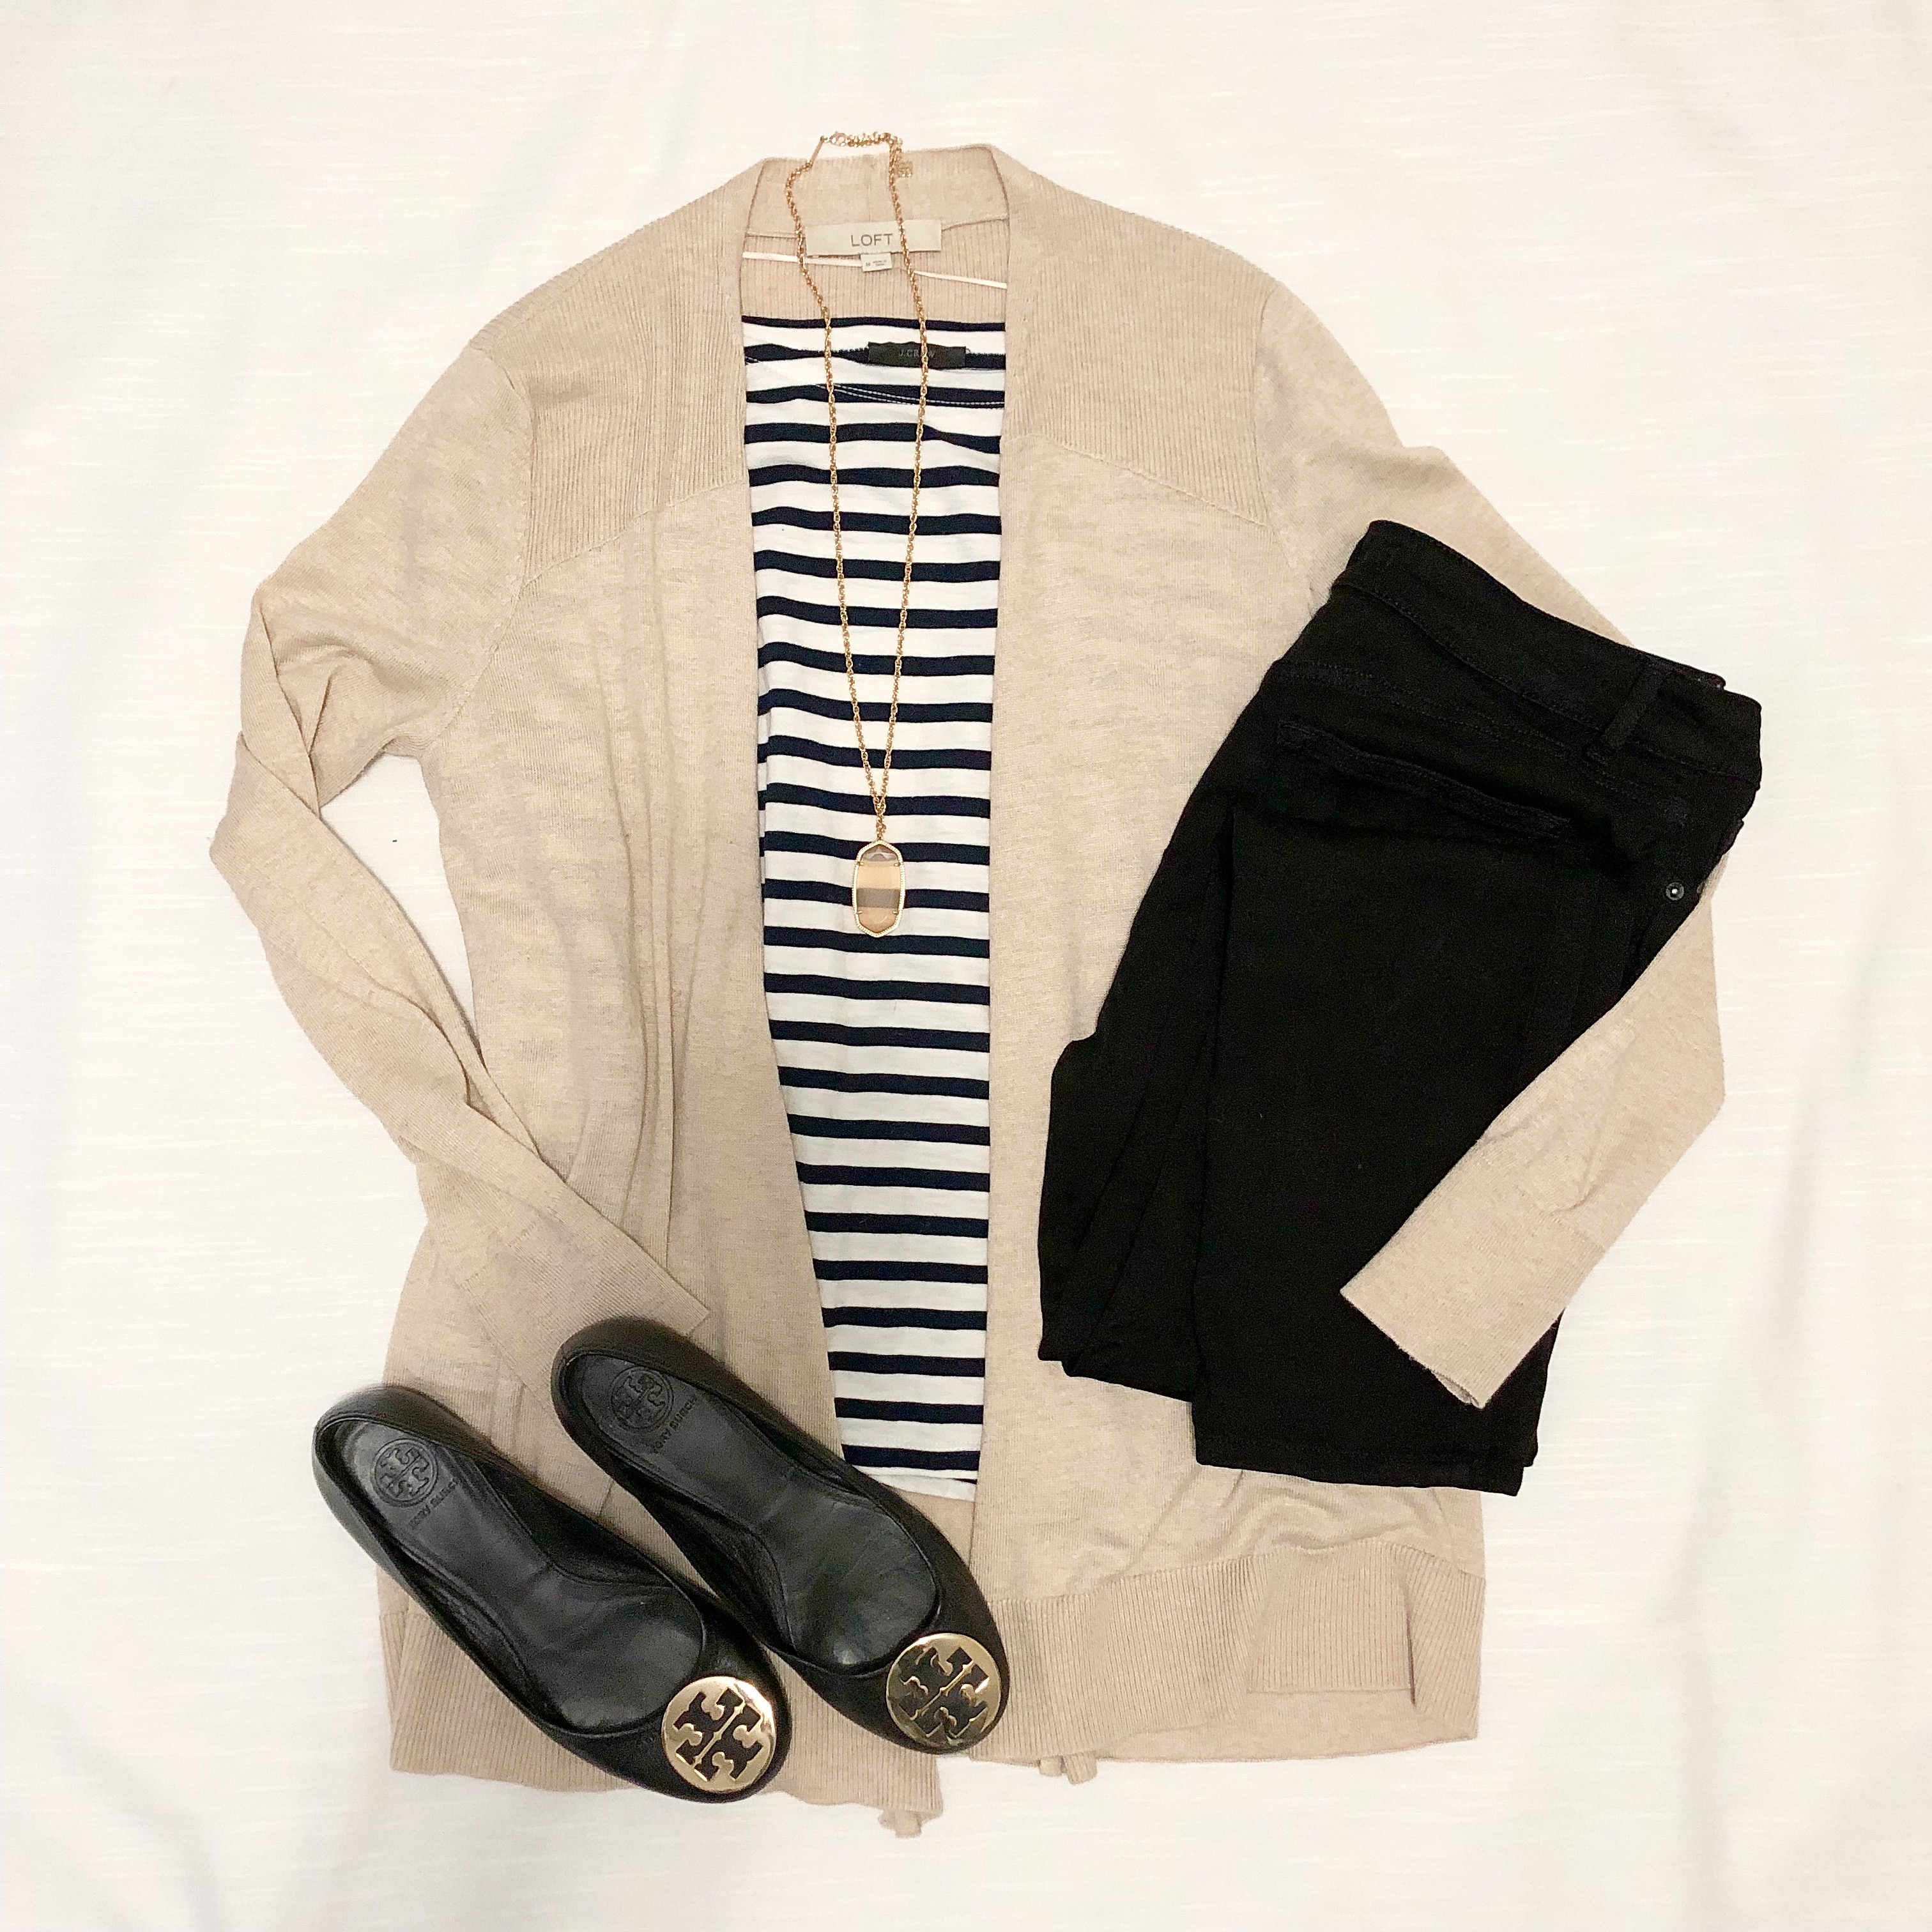 Instagram September 2018 - J Crew striped top, black jeans, beige cardigan, Tory Burch flats